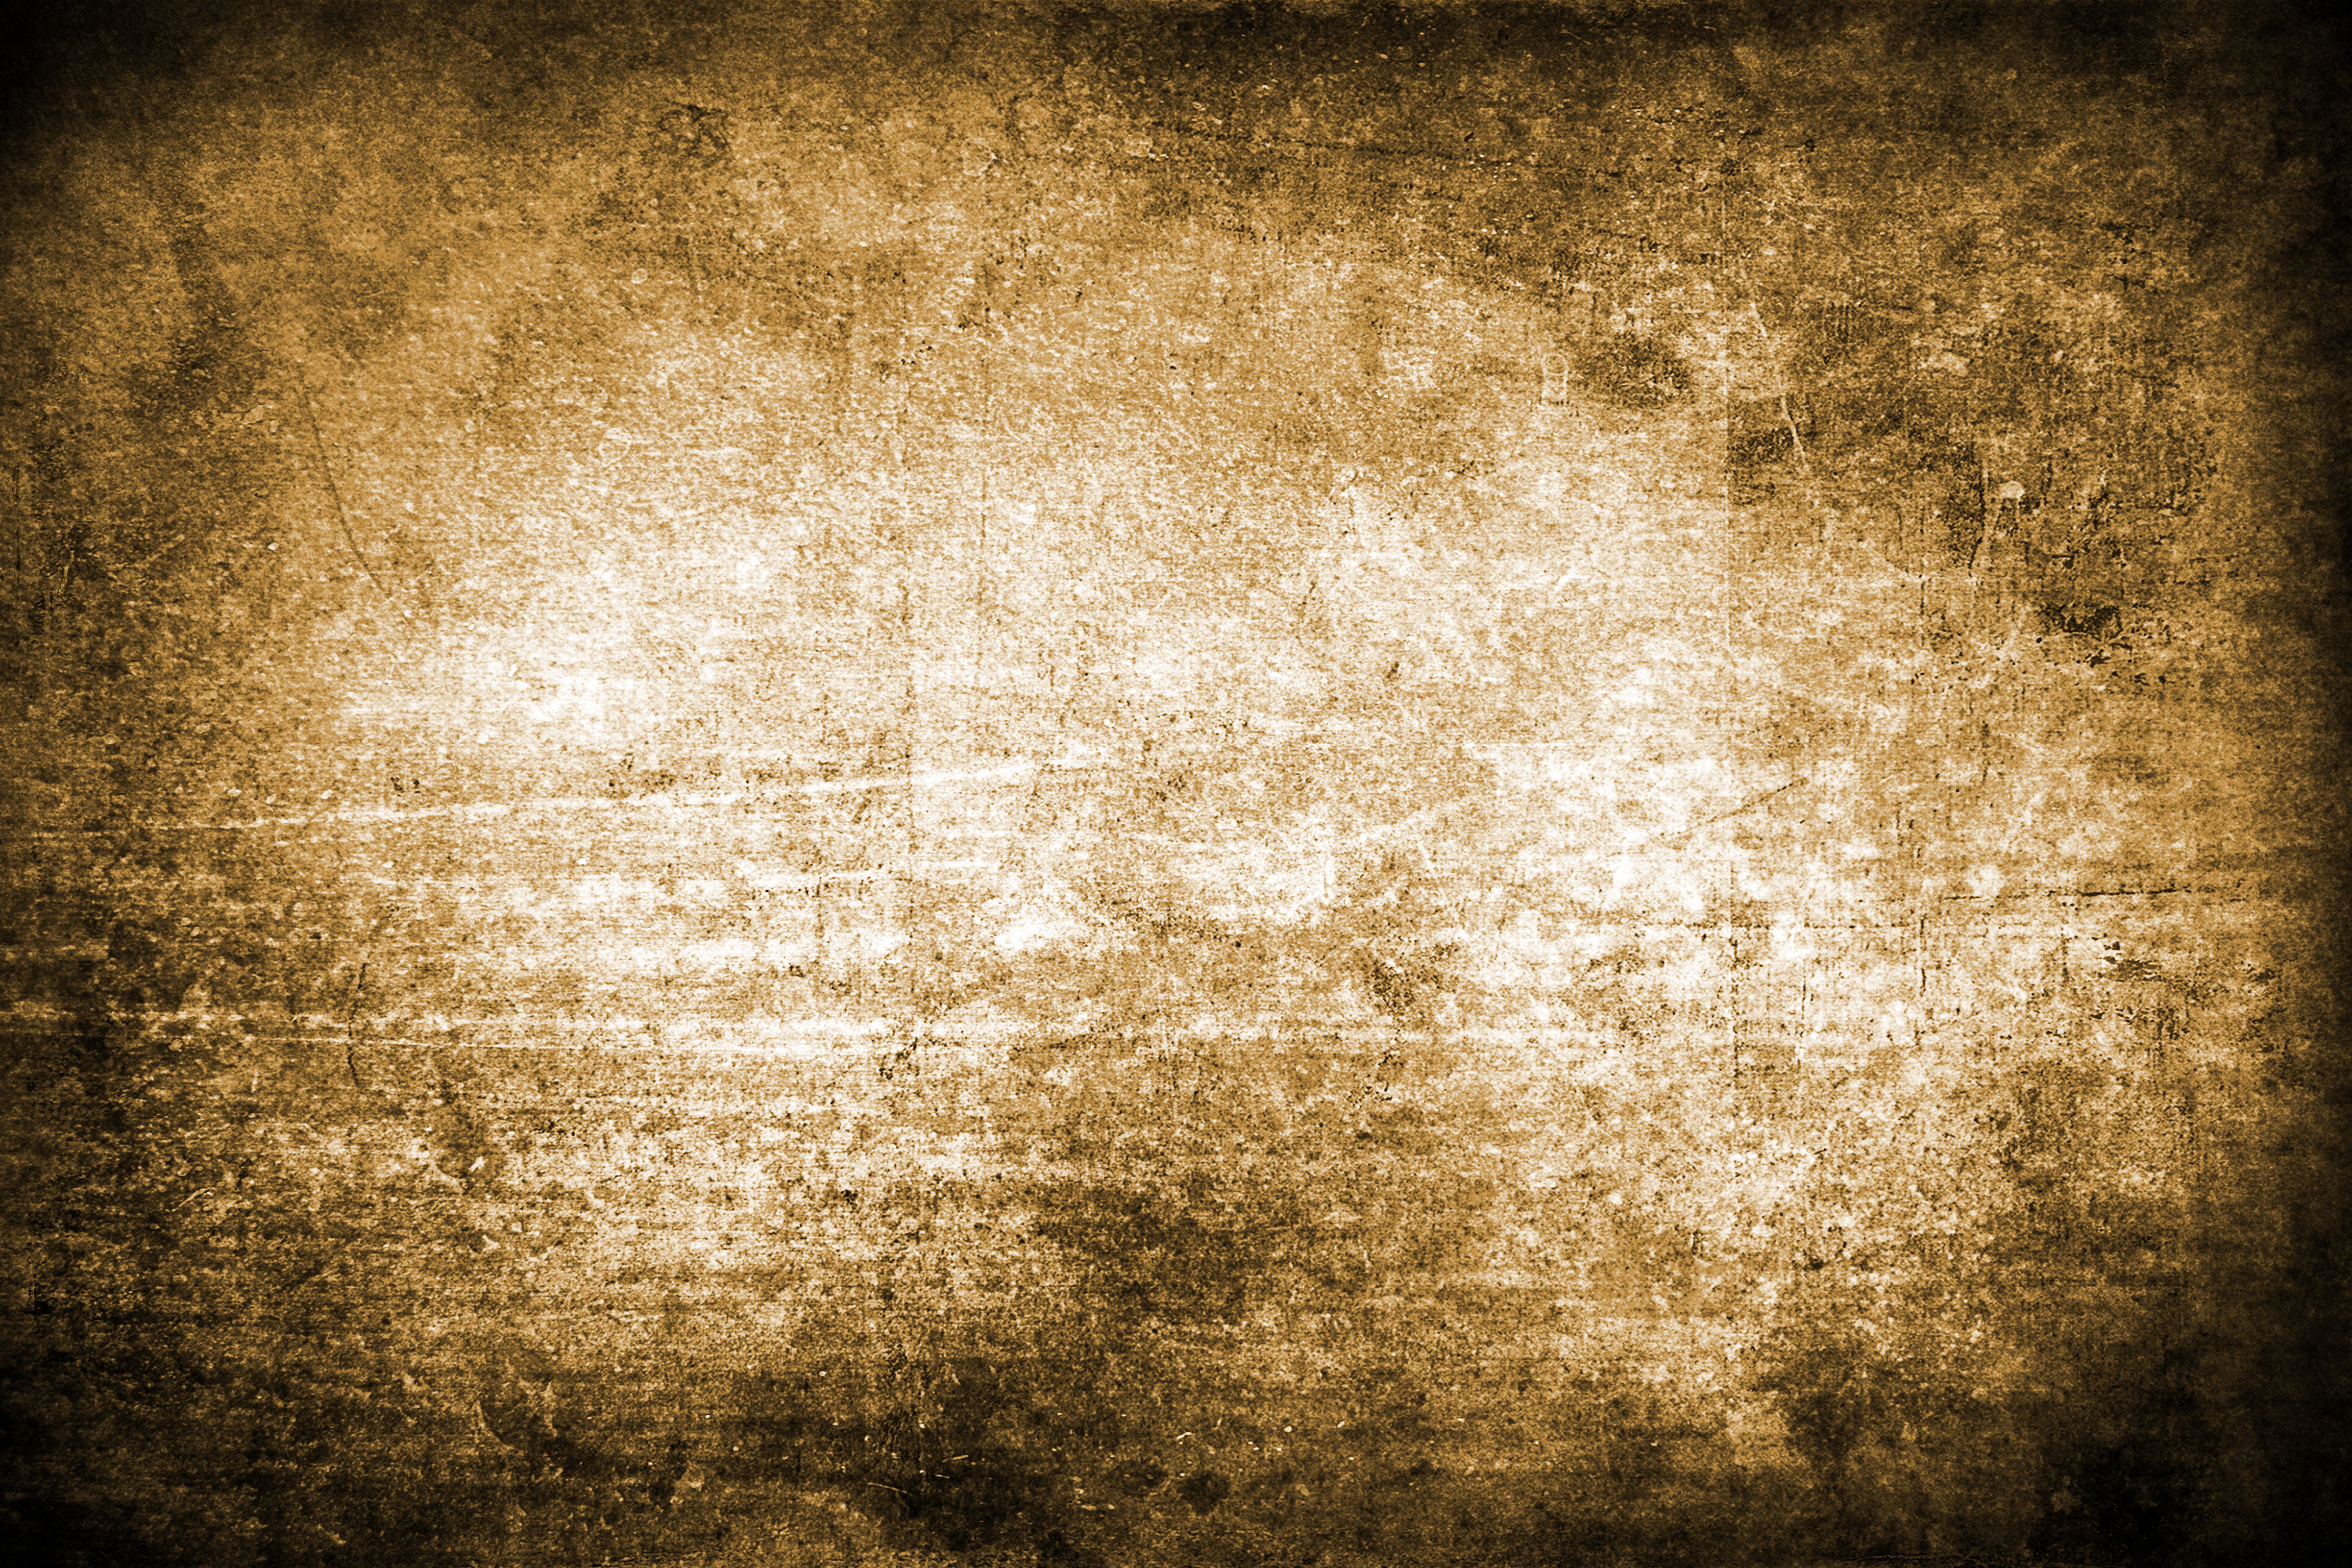 Android Download Grunge Textures Created - Berkshireregion